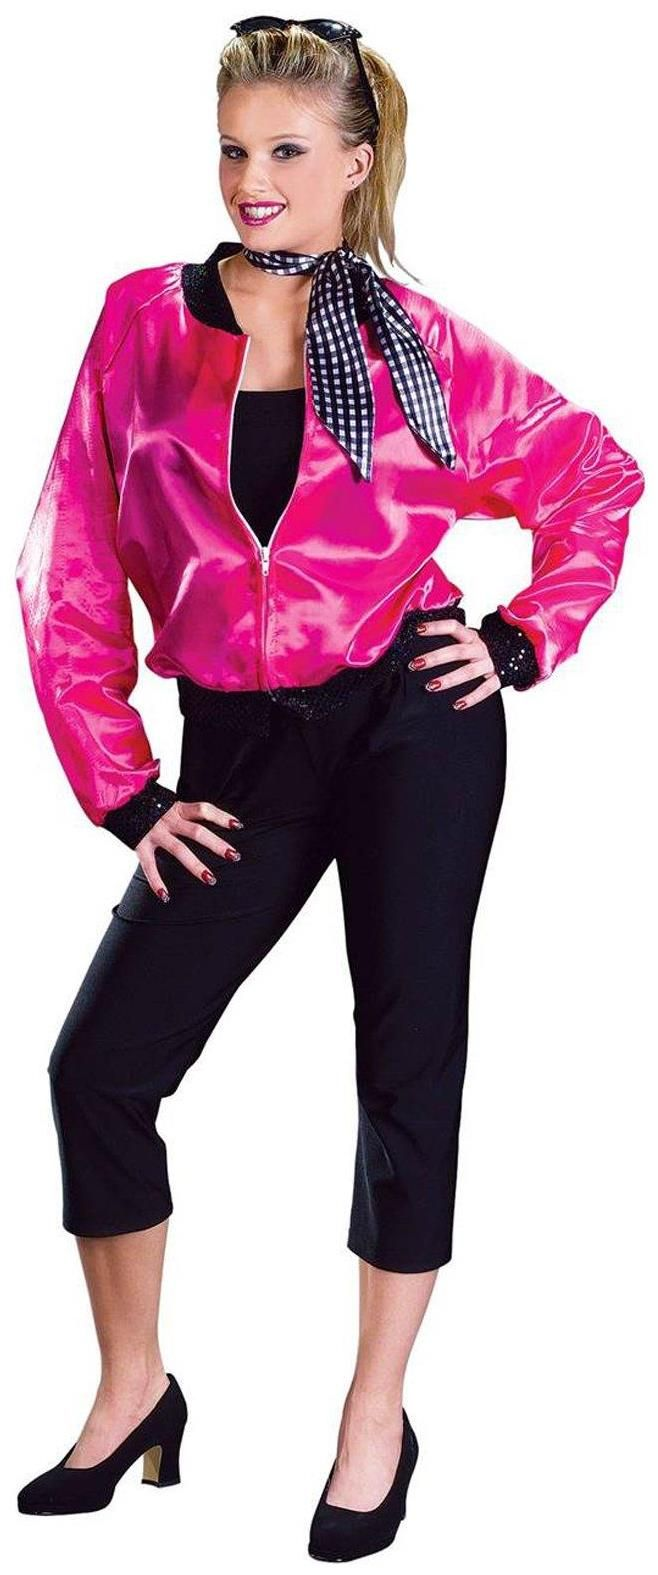 PartyBell.com - Pink Ladies Complete Adult Costume #ValentinesDayCostume